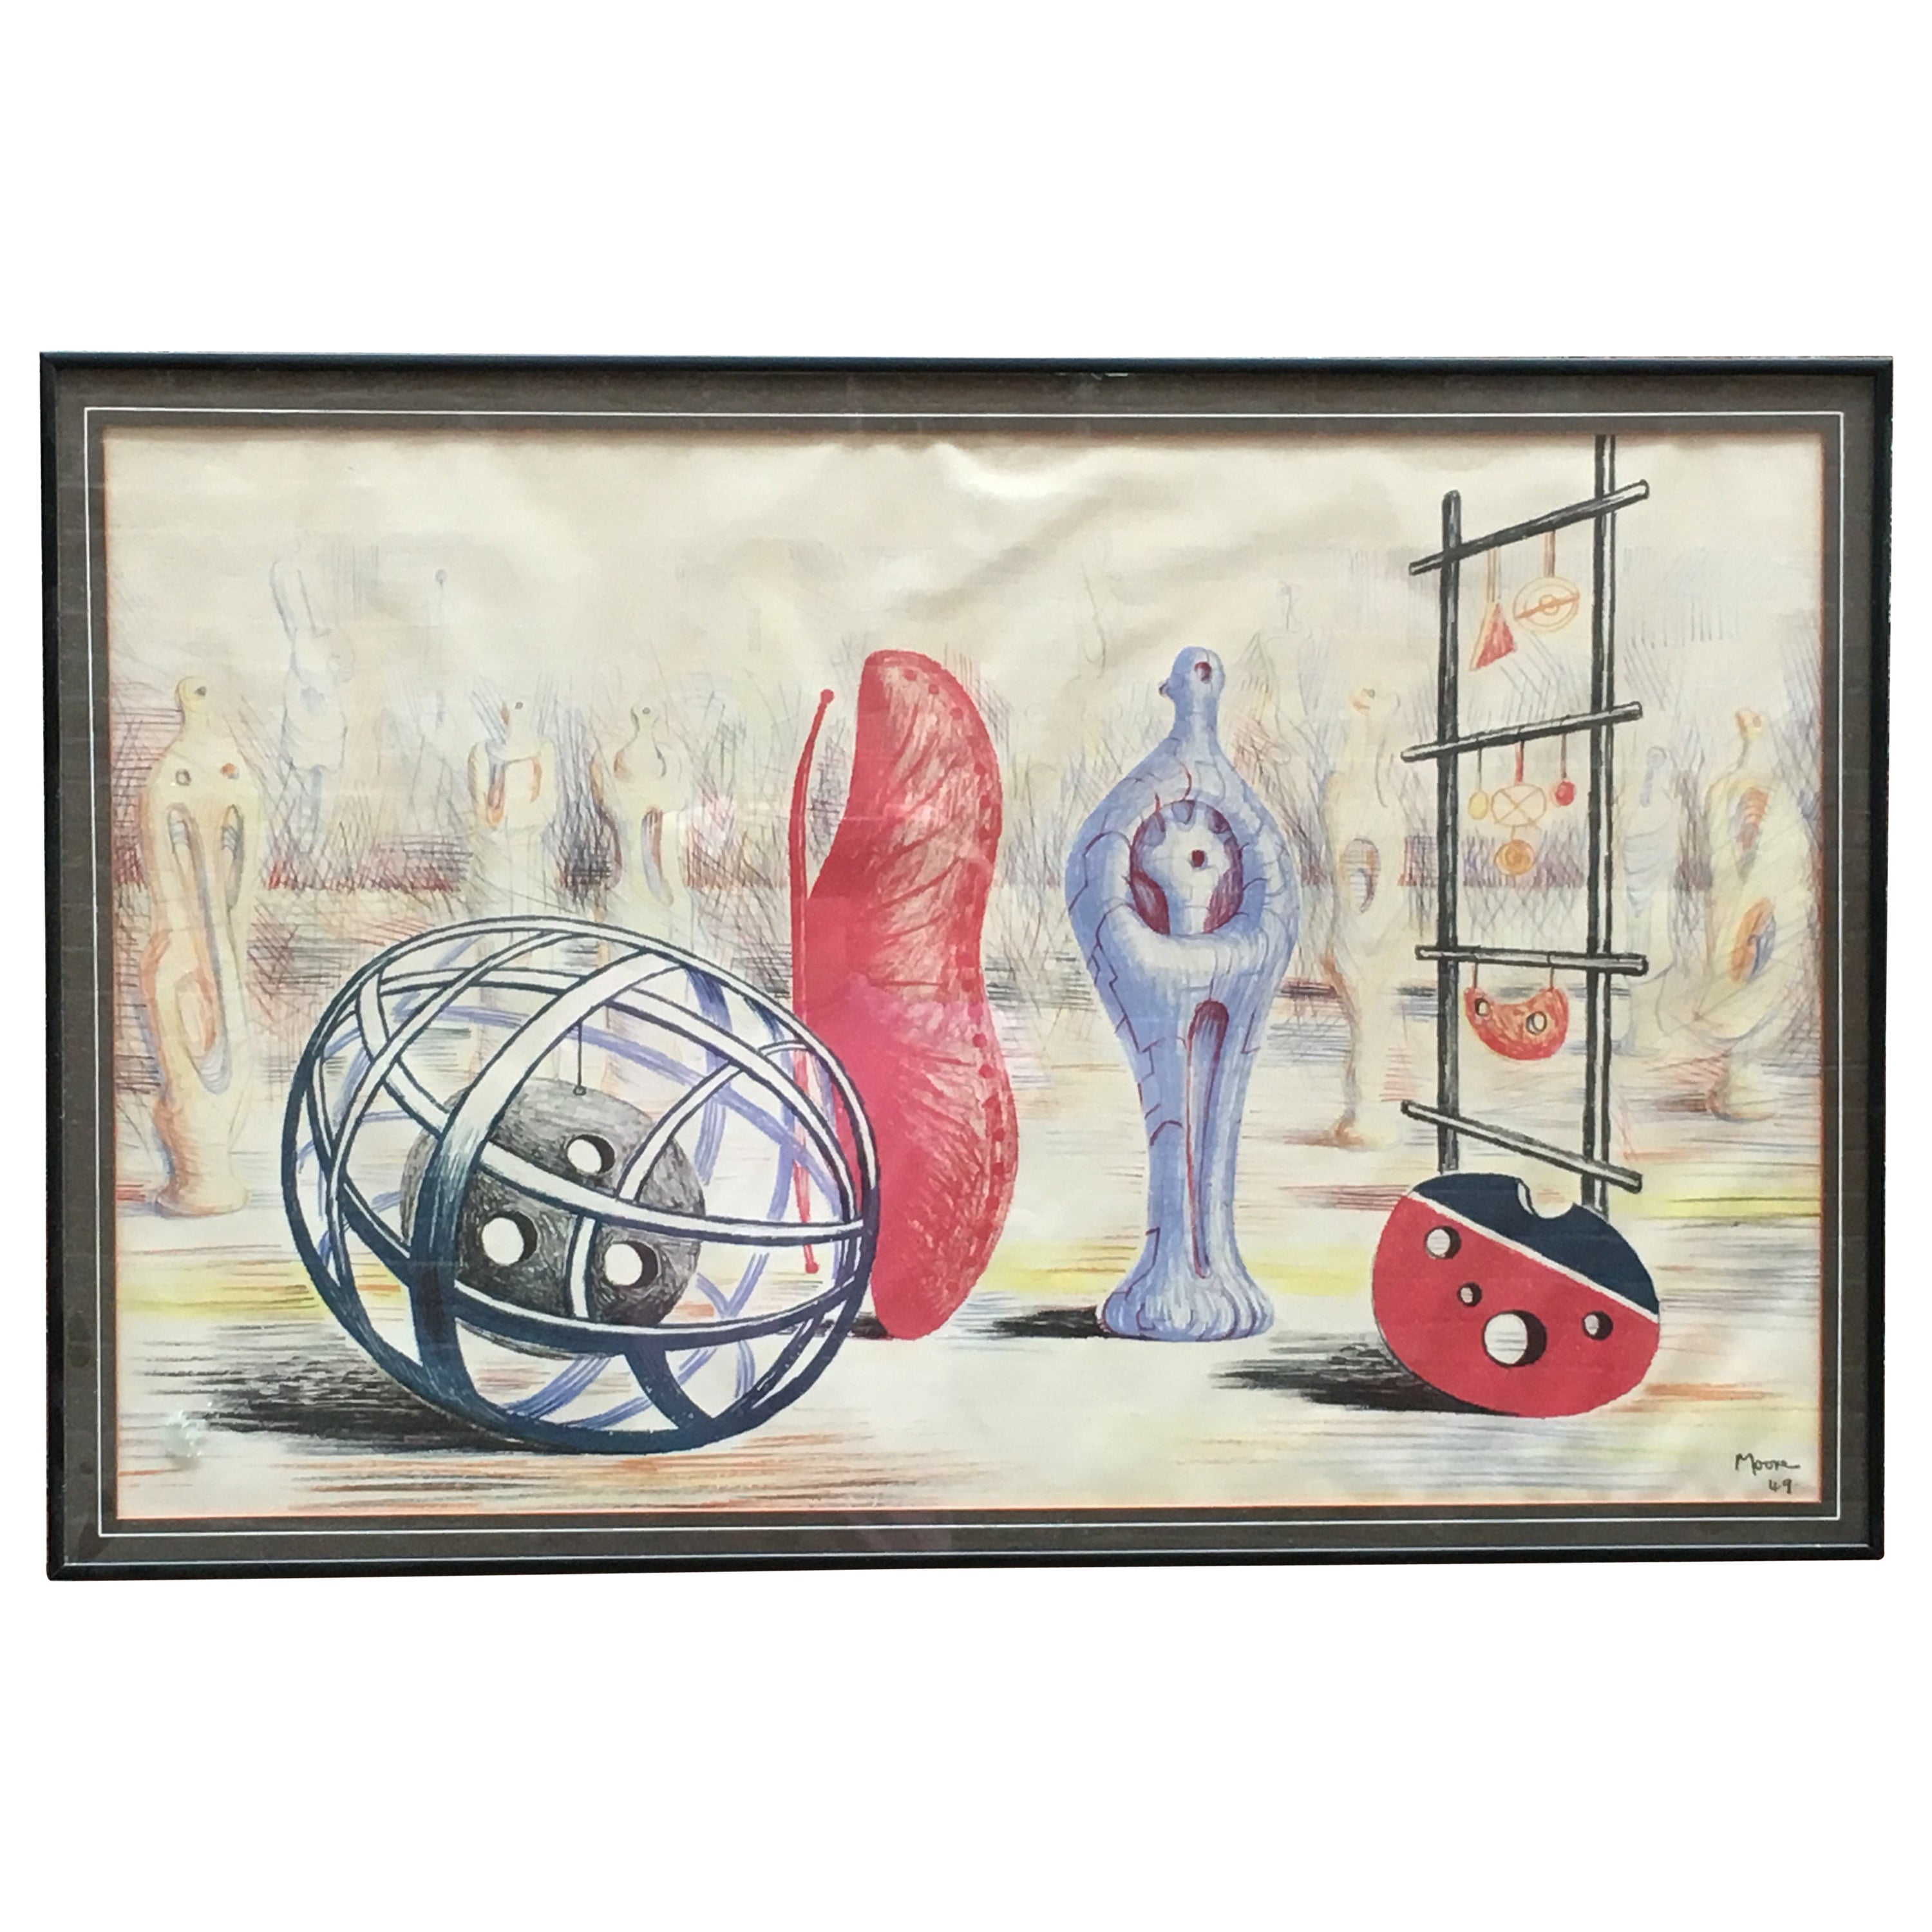 Henry Moore 1949 Sculptural Objects Lithograph